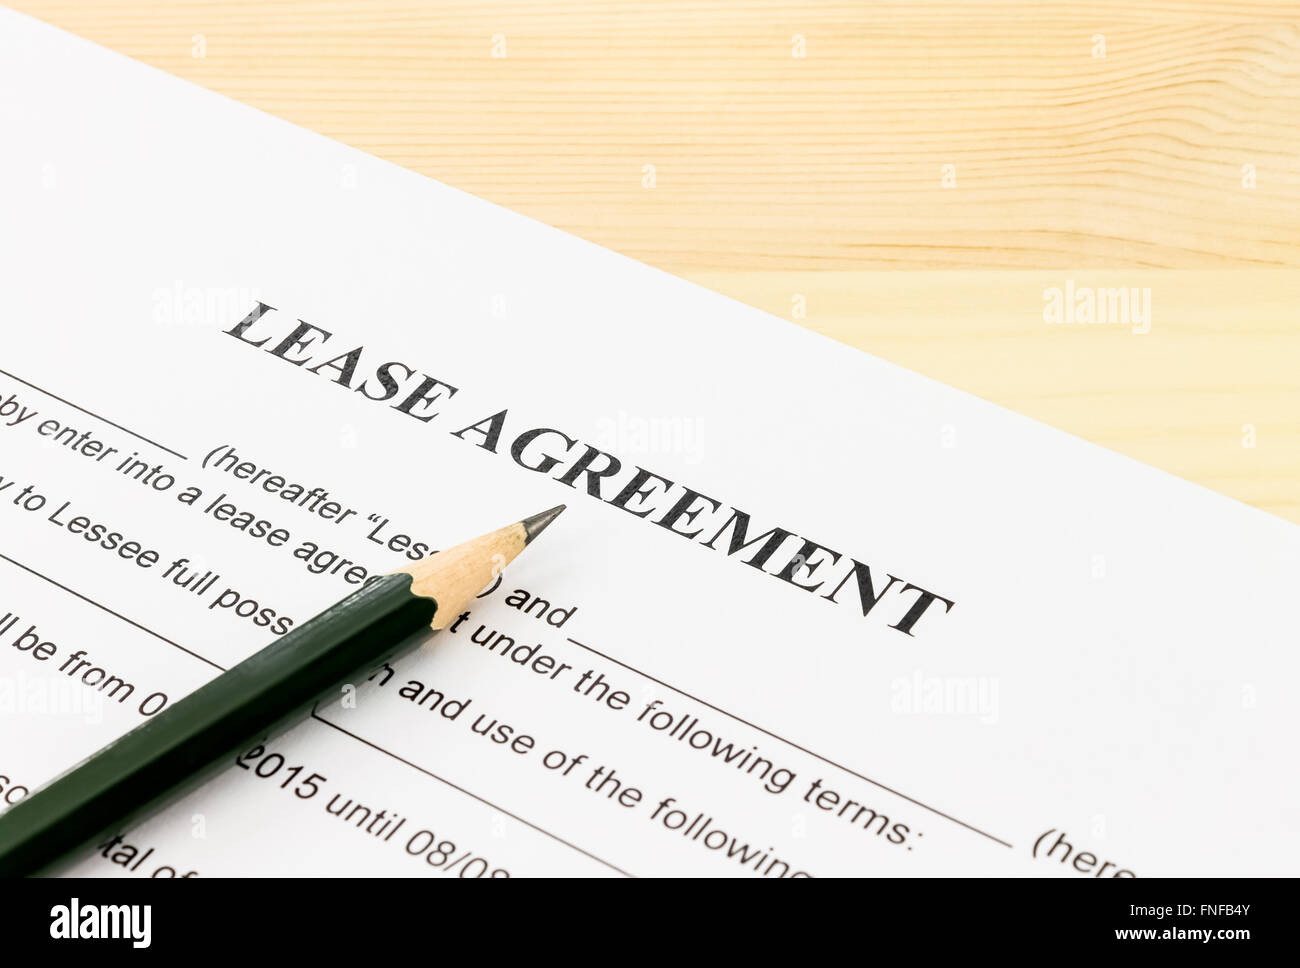 Lease Agreement Contract Document And Pencil Bottom Left Corner On